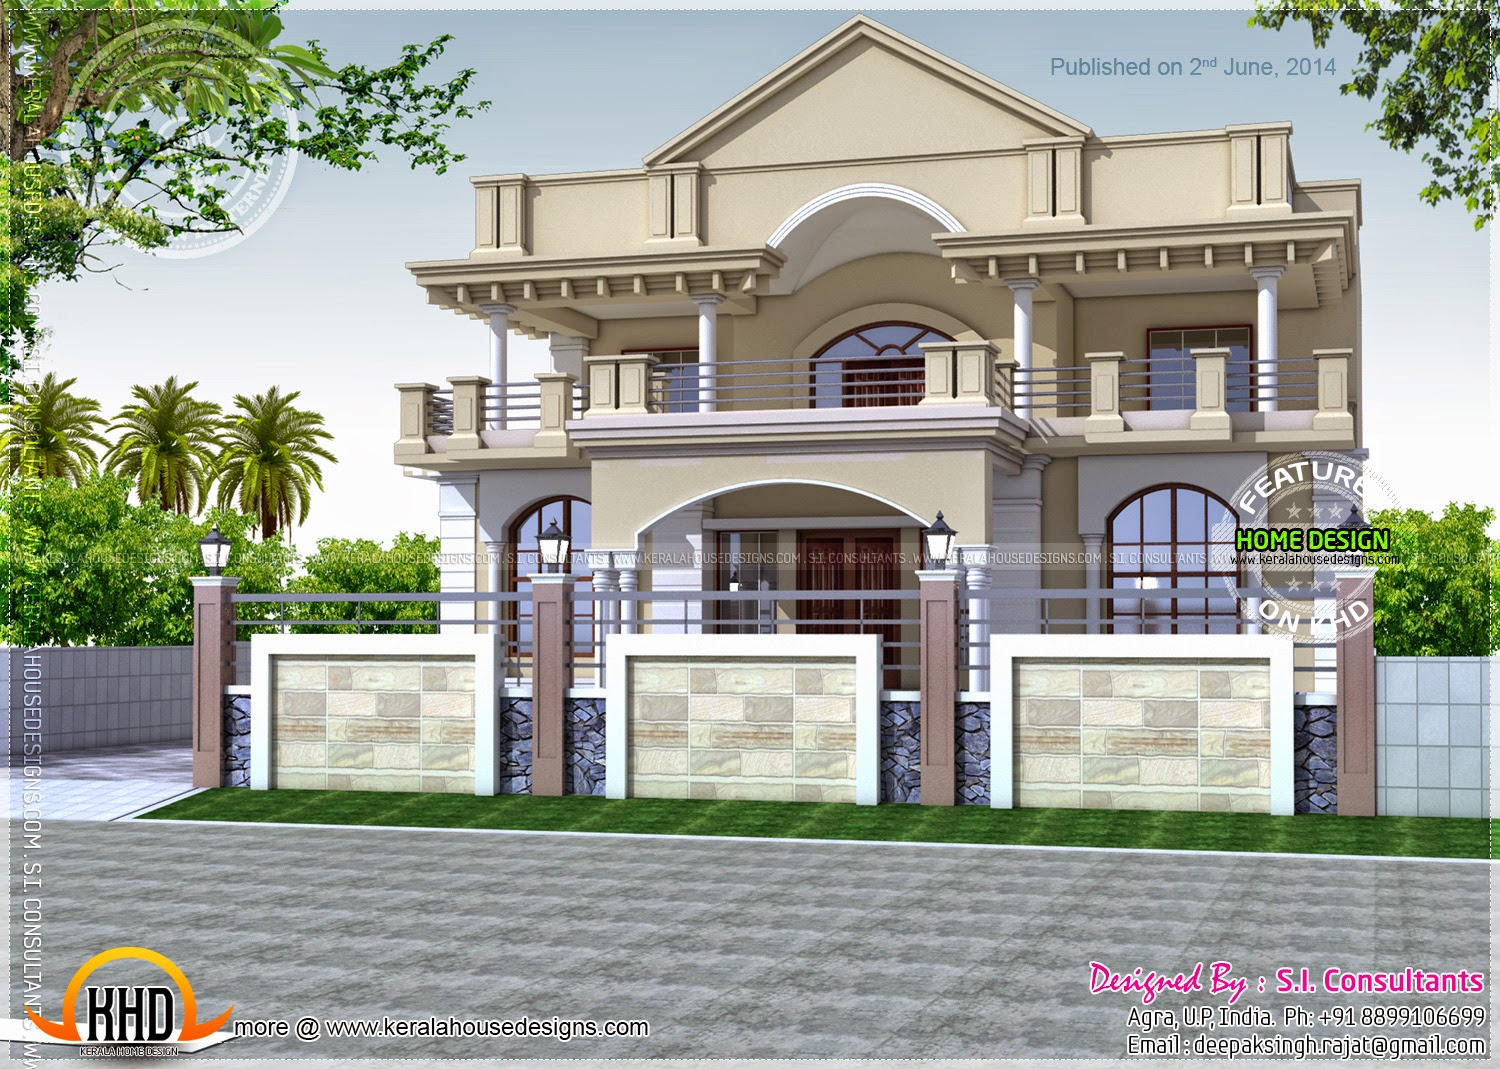 Best Kitchen Gallery: North Indian Exterior House Kerala Home Design And Floor Plans of Indian Home Design on rachelxblog.com